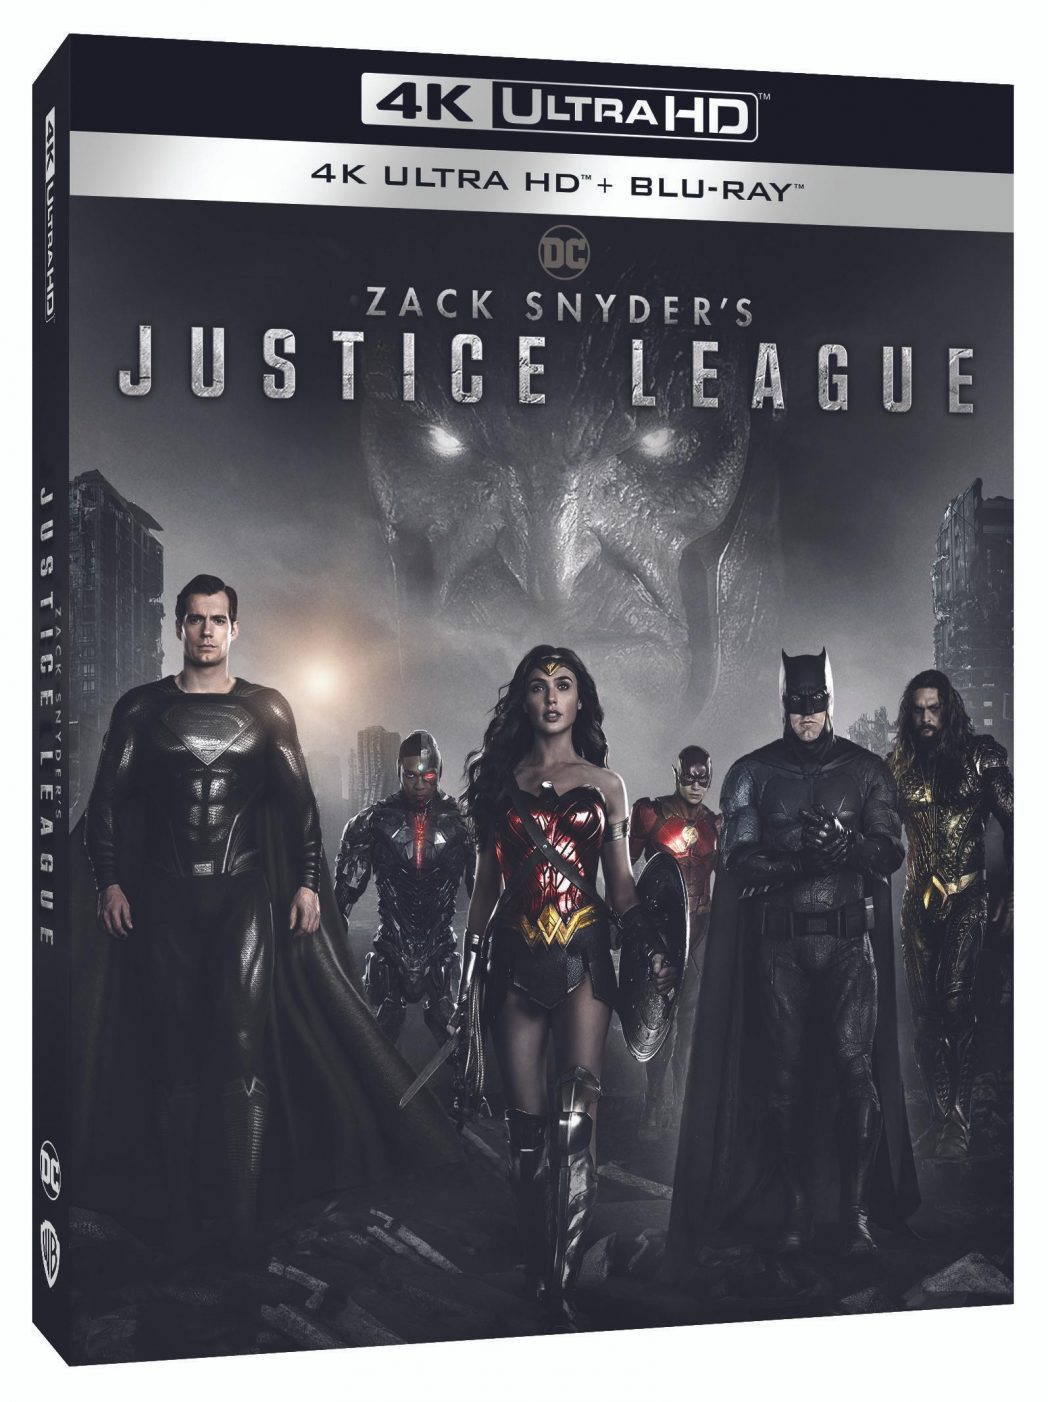 Zack Snyder's Justice League on DVD today!